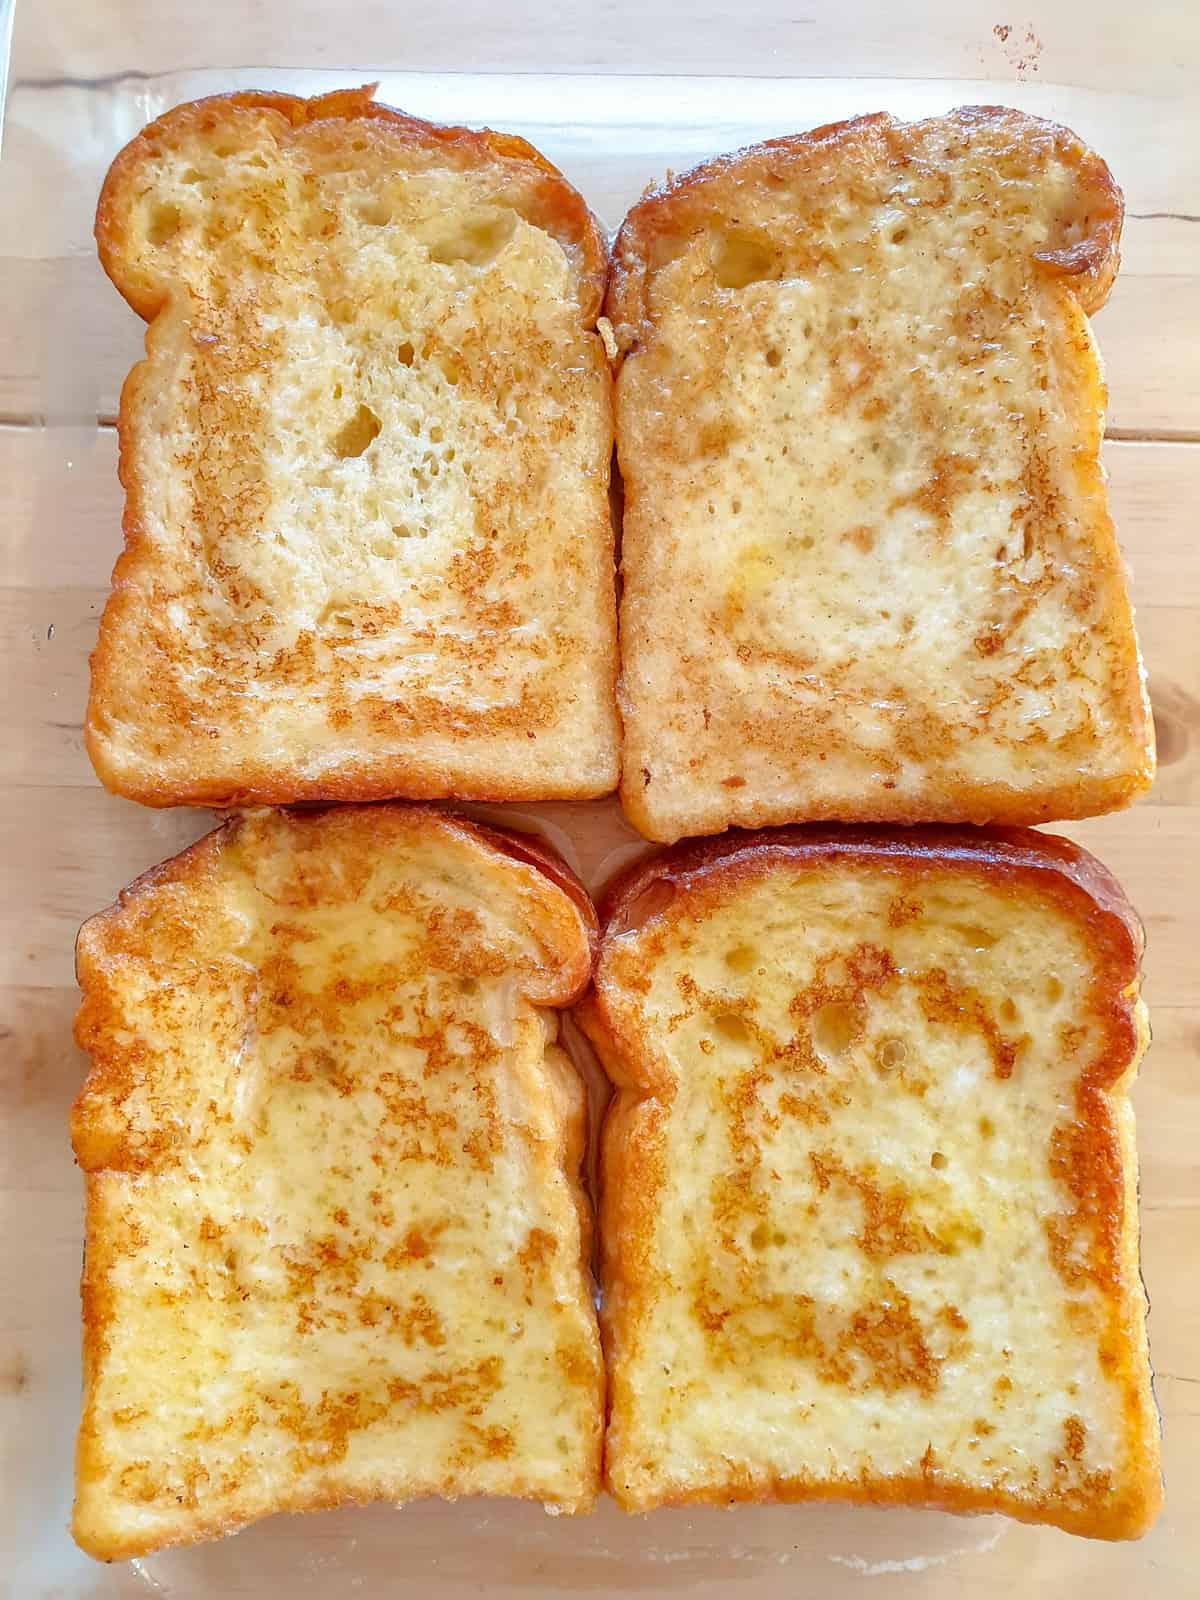 Four honey soaked torrijas made with sandwich bread.